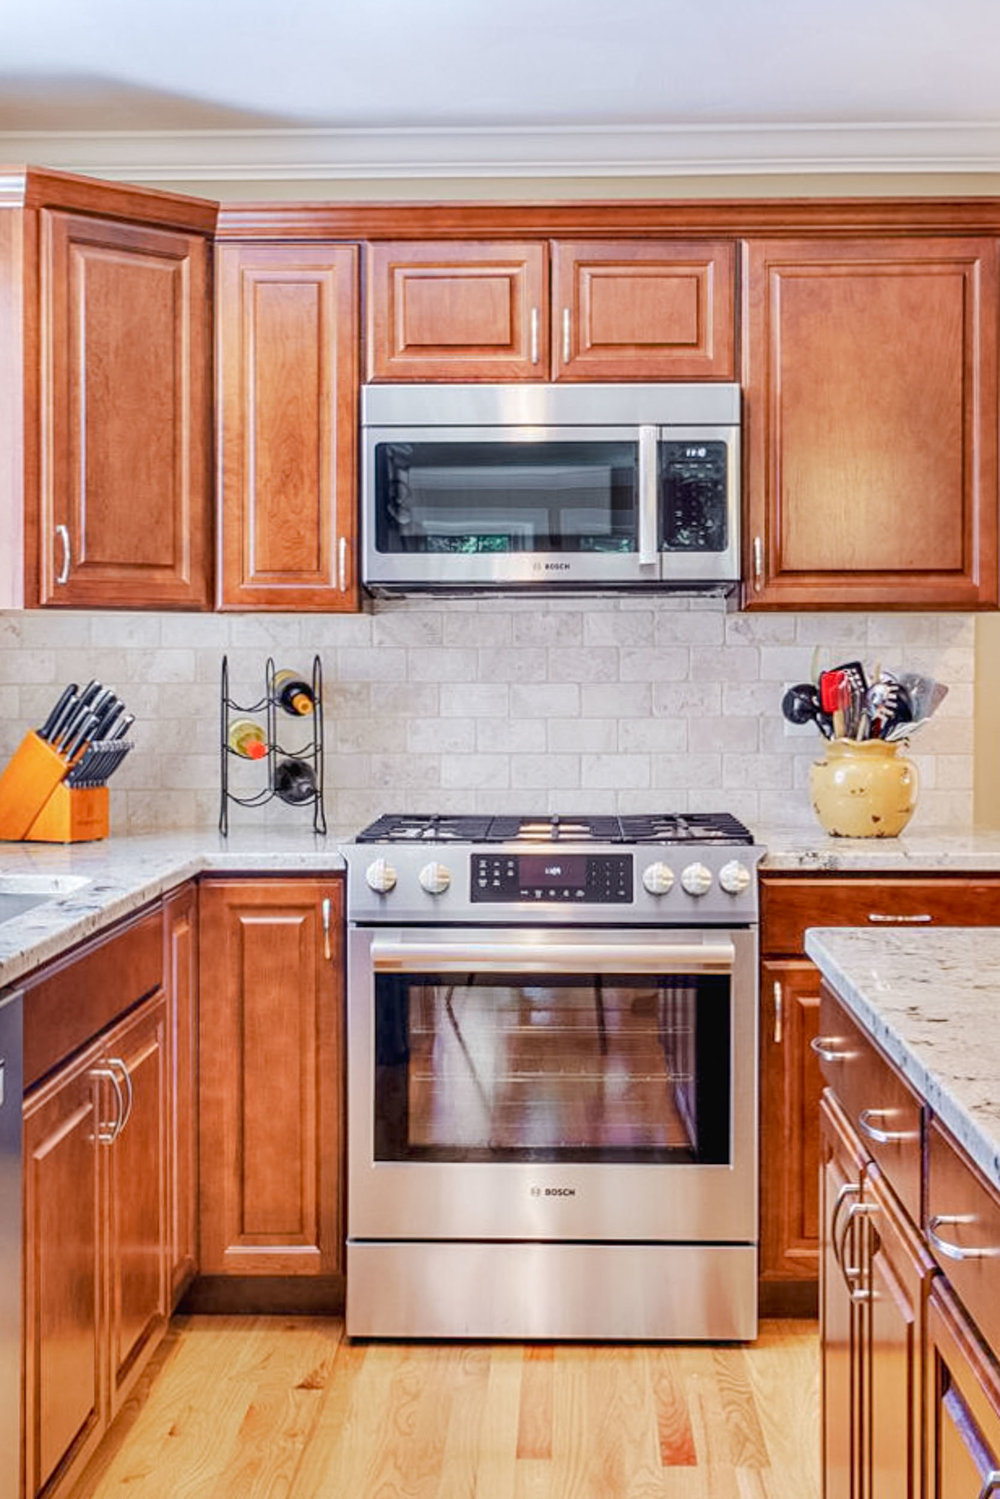 The cabinets are maple with a dark cherry finish.